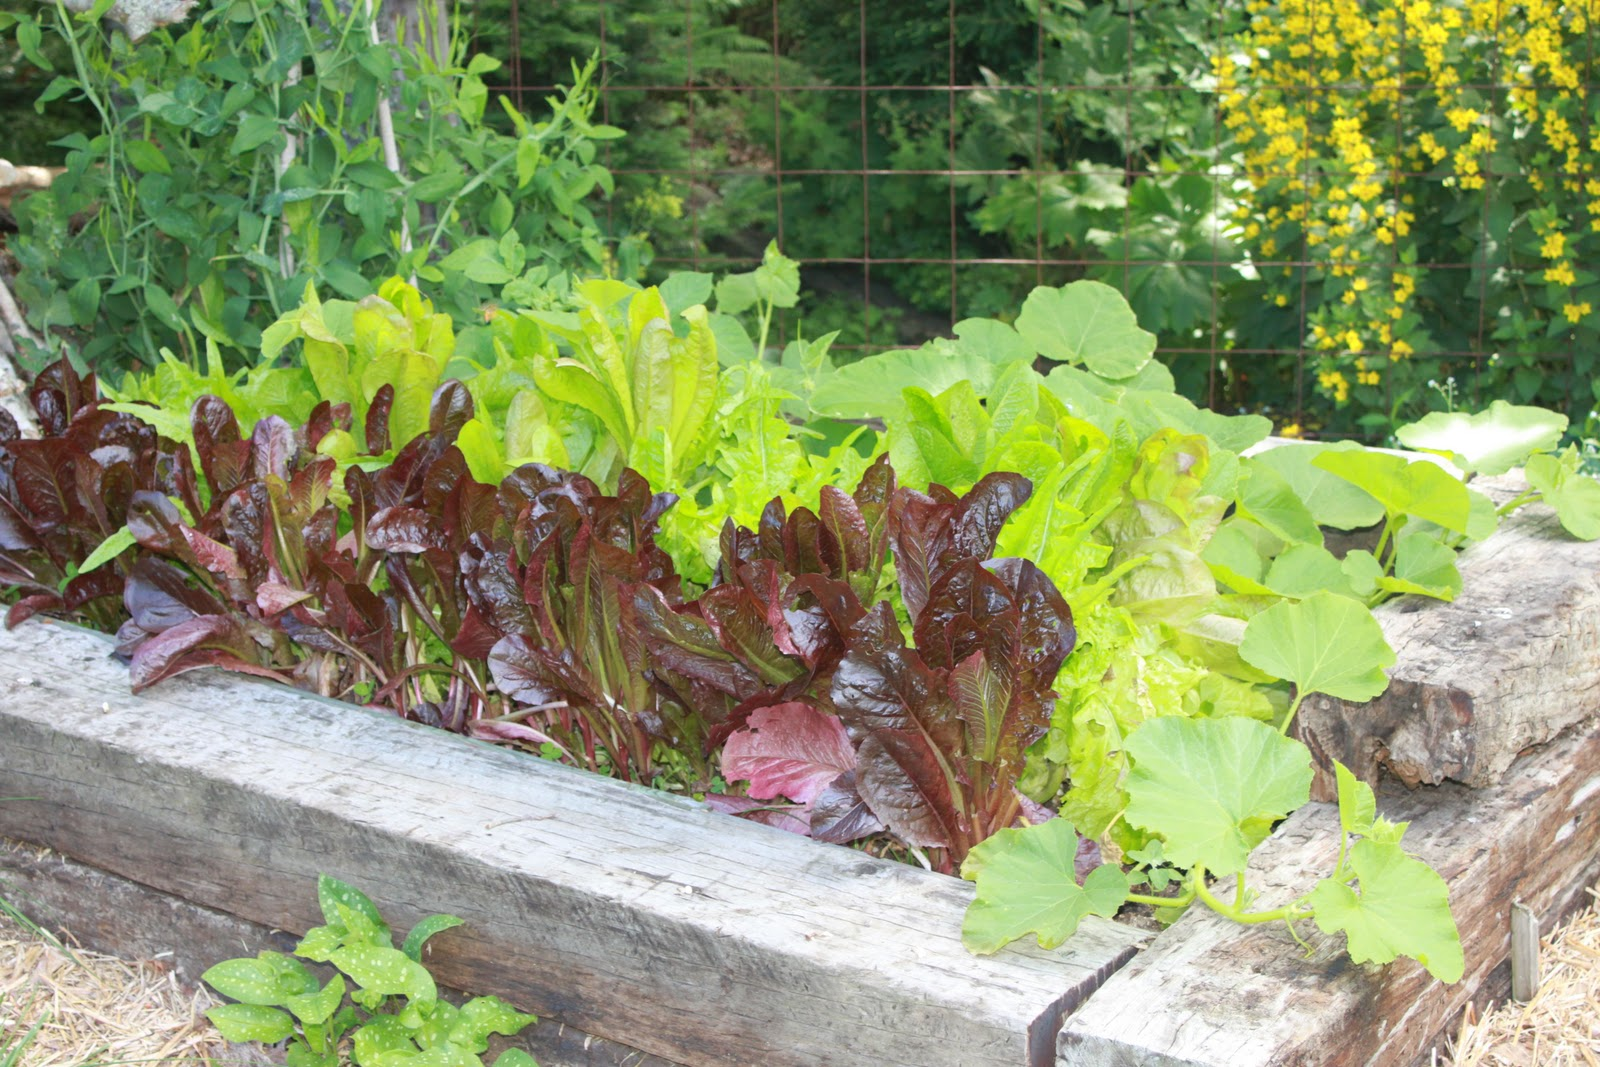 Rising food prices and shortages make a garden the perfect solution.